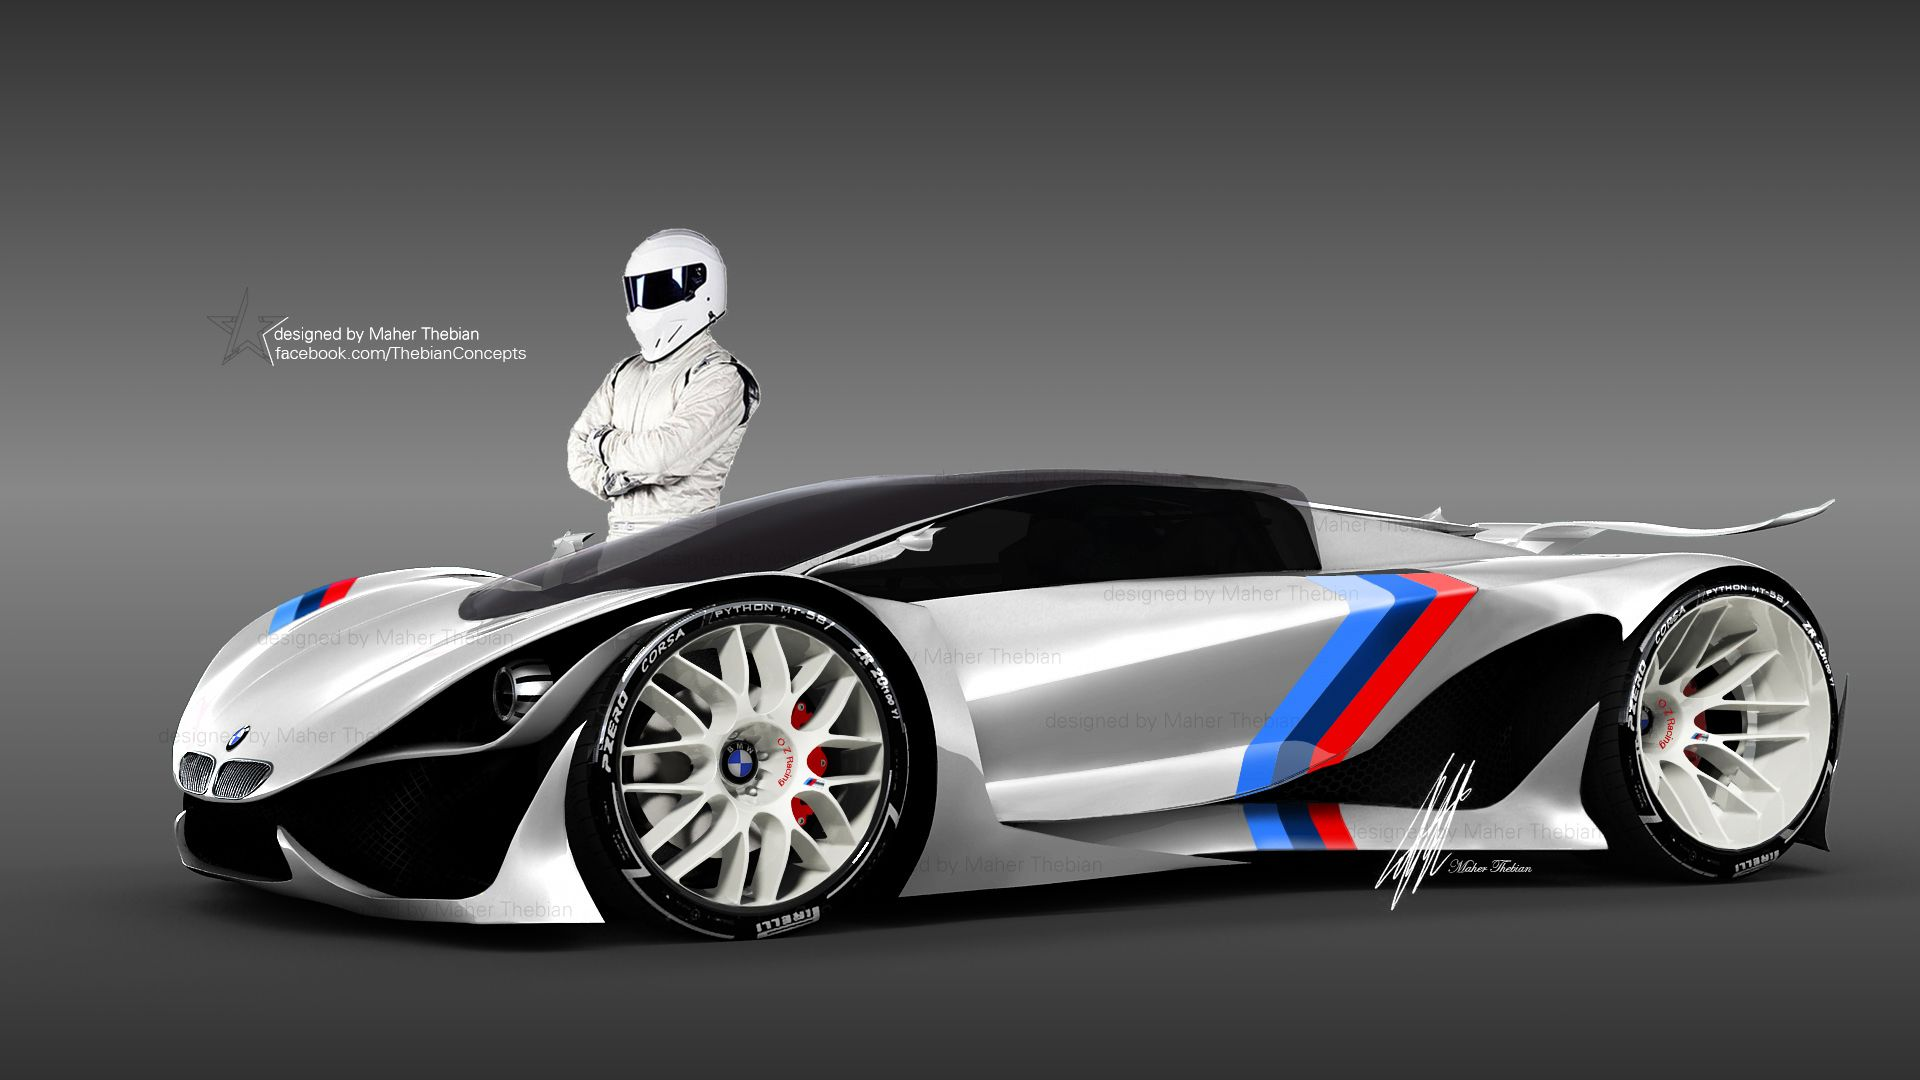 My New 3d Max Concept Car Design For Bmw Future Super Sports Car